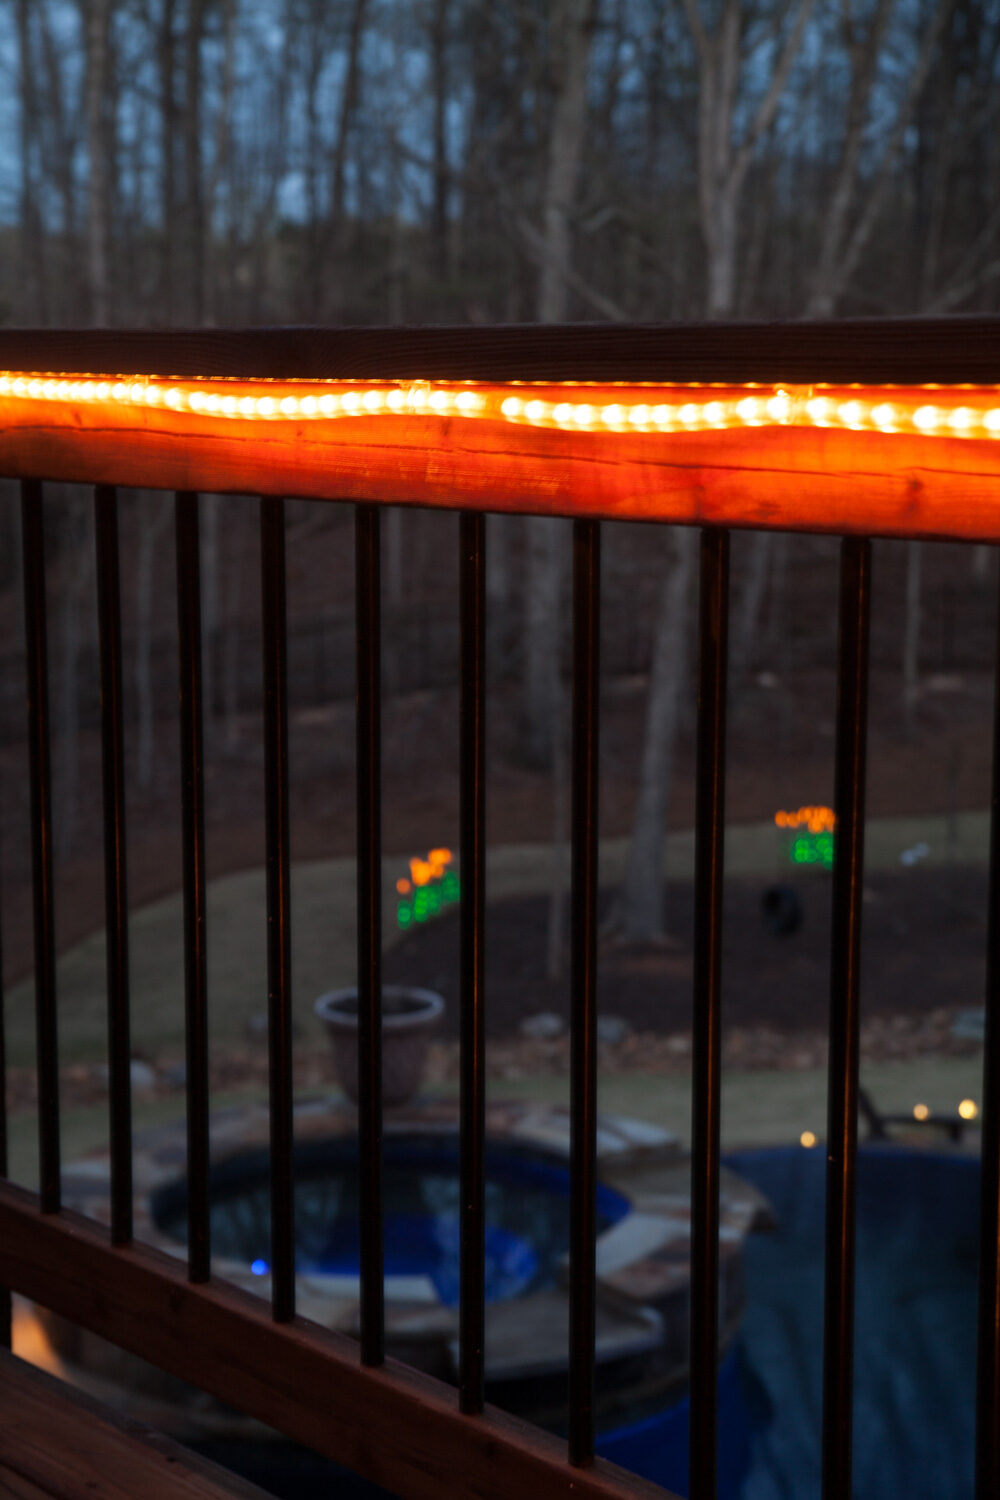 Night light effect using rope light as a deck lighting idea this summer & Deck Lighting Ideas with Brilliant Results! - Yard Envy azcodes.com